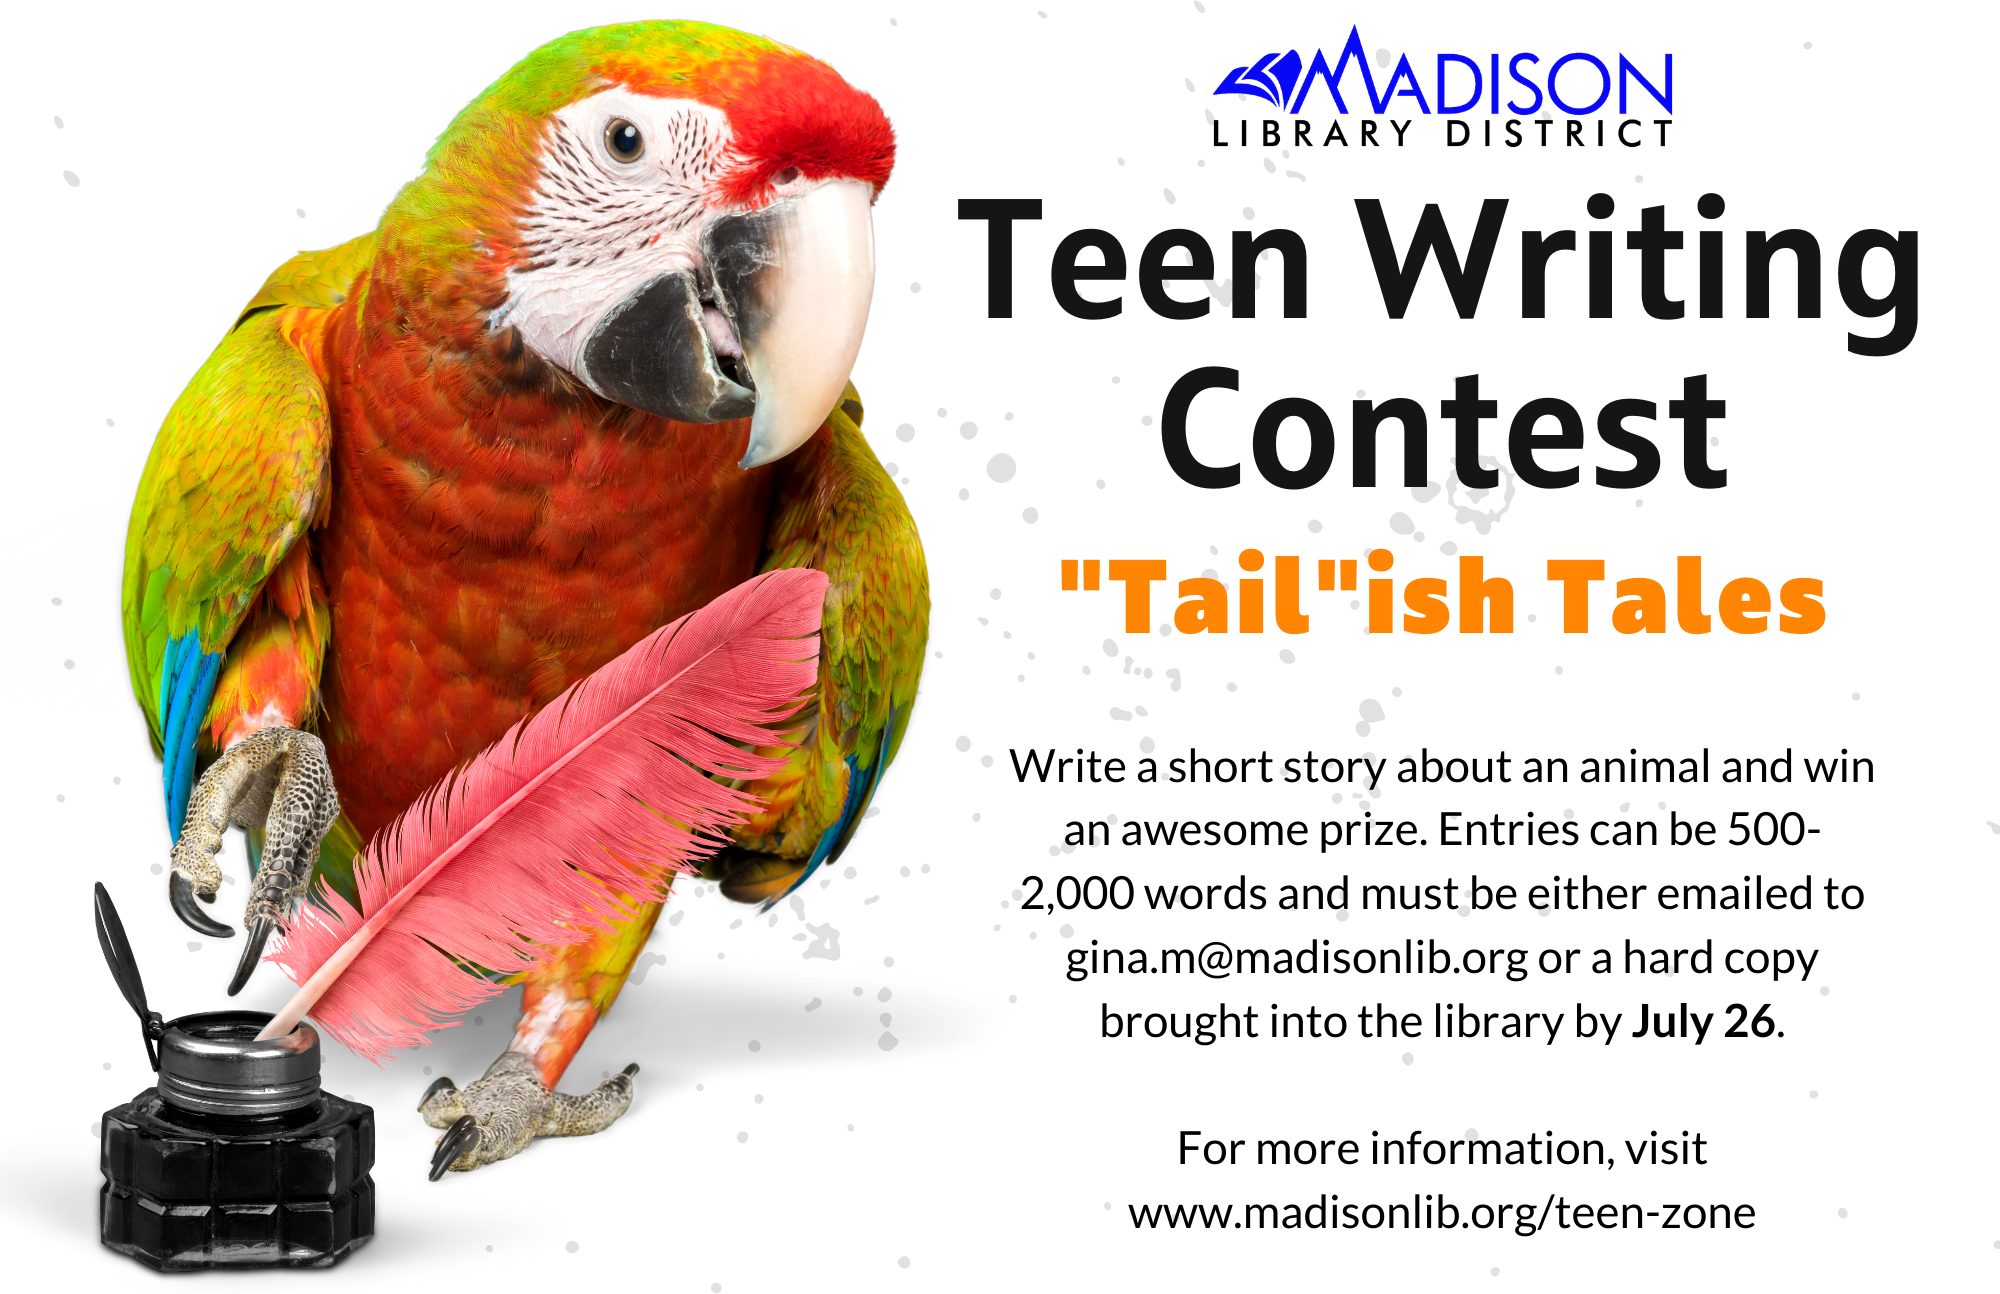 """Teen Writing Contest: """"Tail""""ish Tales. Write a short story about an animal and win an awesome prize. Entries can be 500- 2,000 words and must be either emailed to gina.m@madisonlib.org or a hard copy brought into the library by July 26.  For more information, visit www.madisonlib.org/teen-zone"""